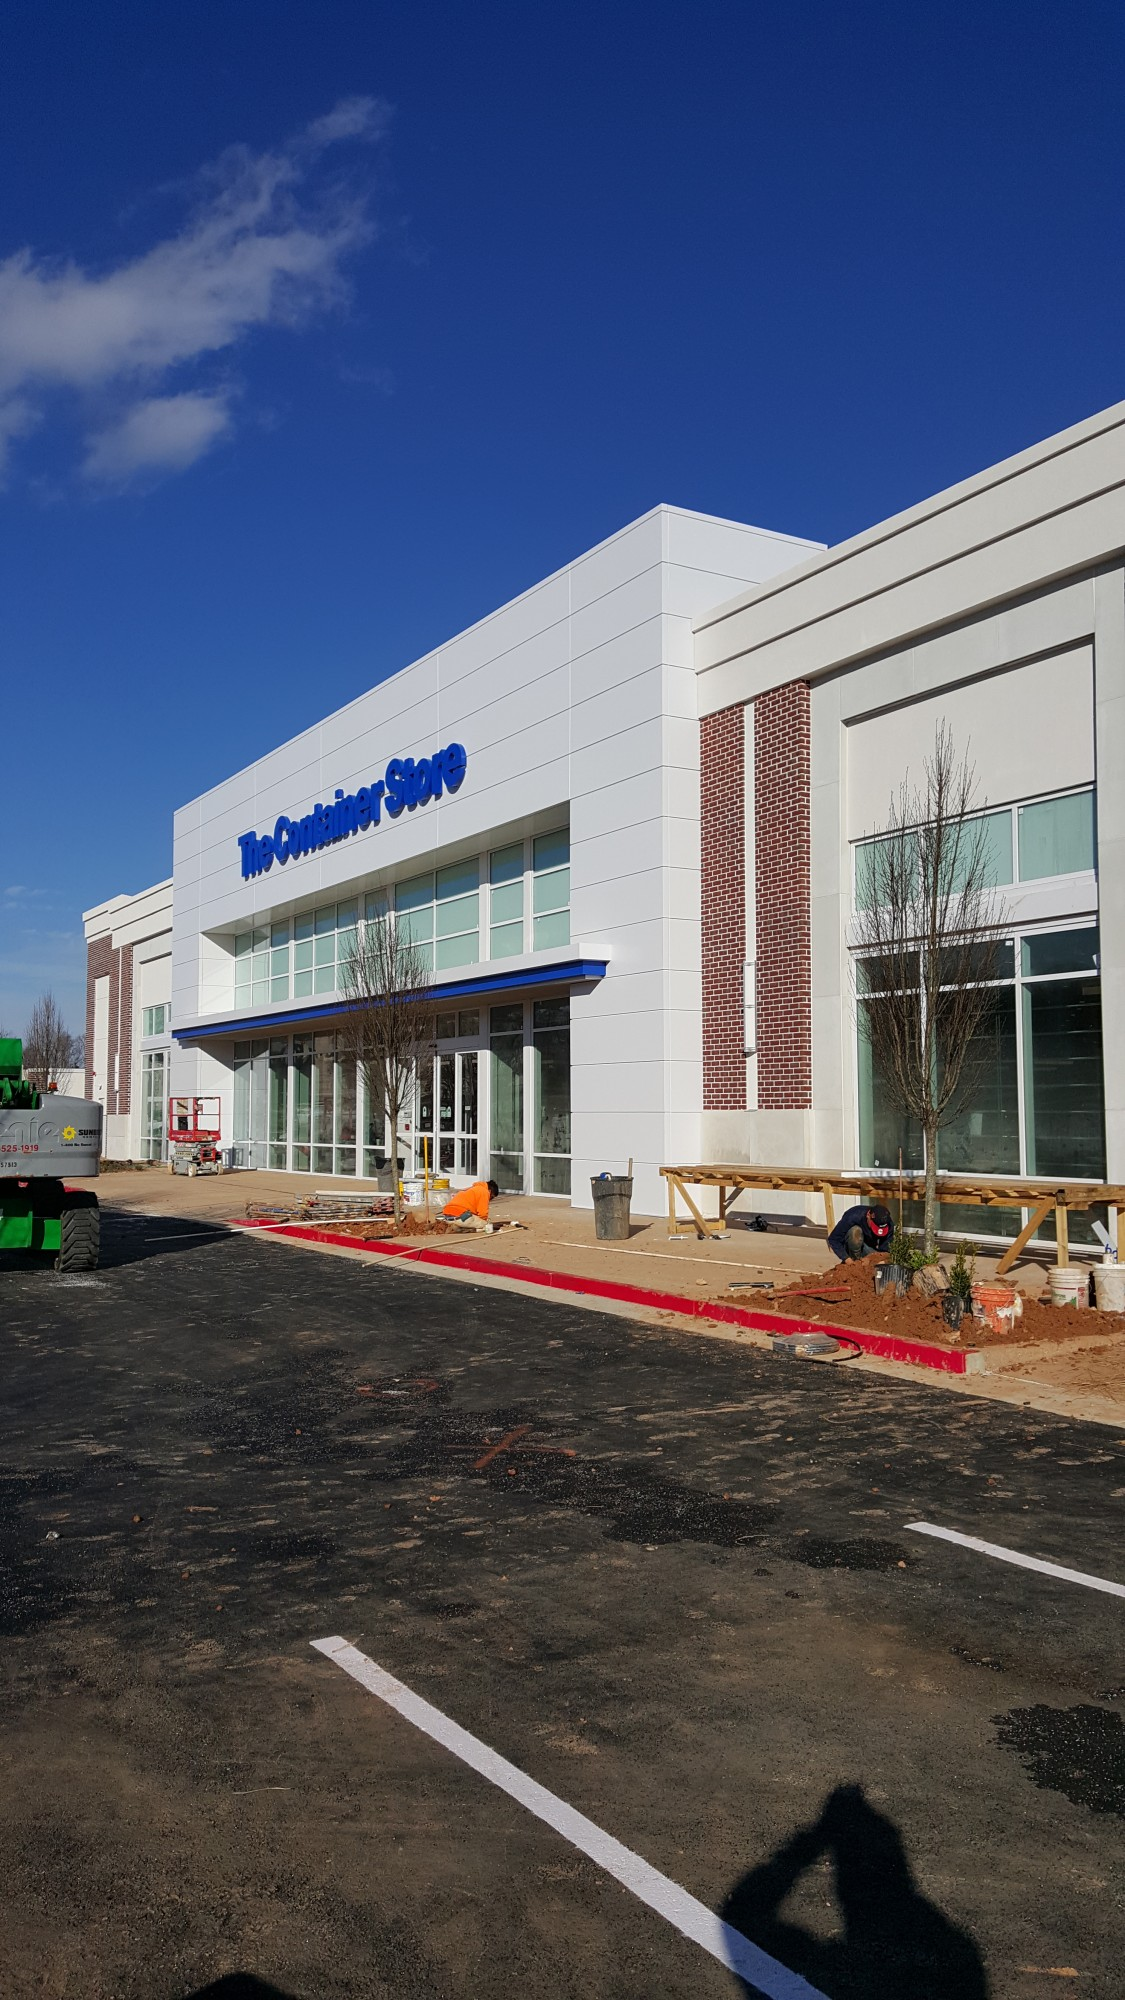 Gene Messer Ford >> The Container Store @ the Avalon - Alpharetta, GA - CCS Image Group